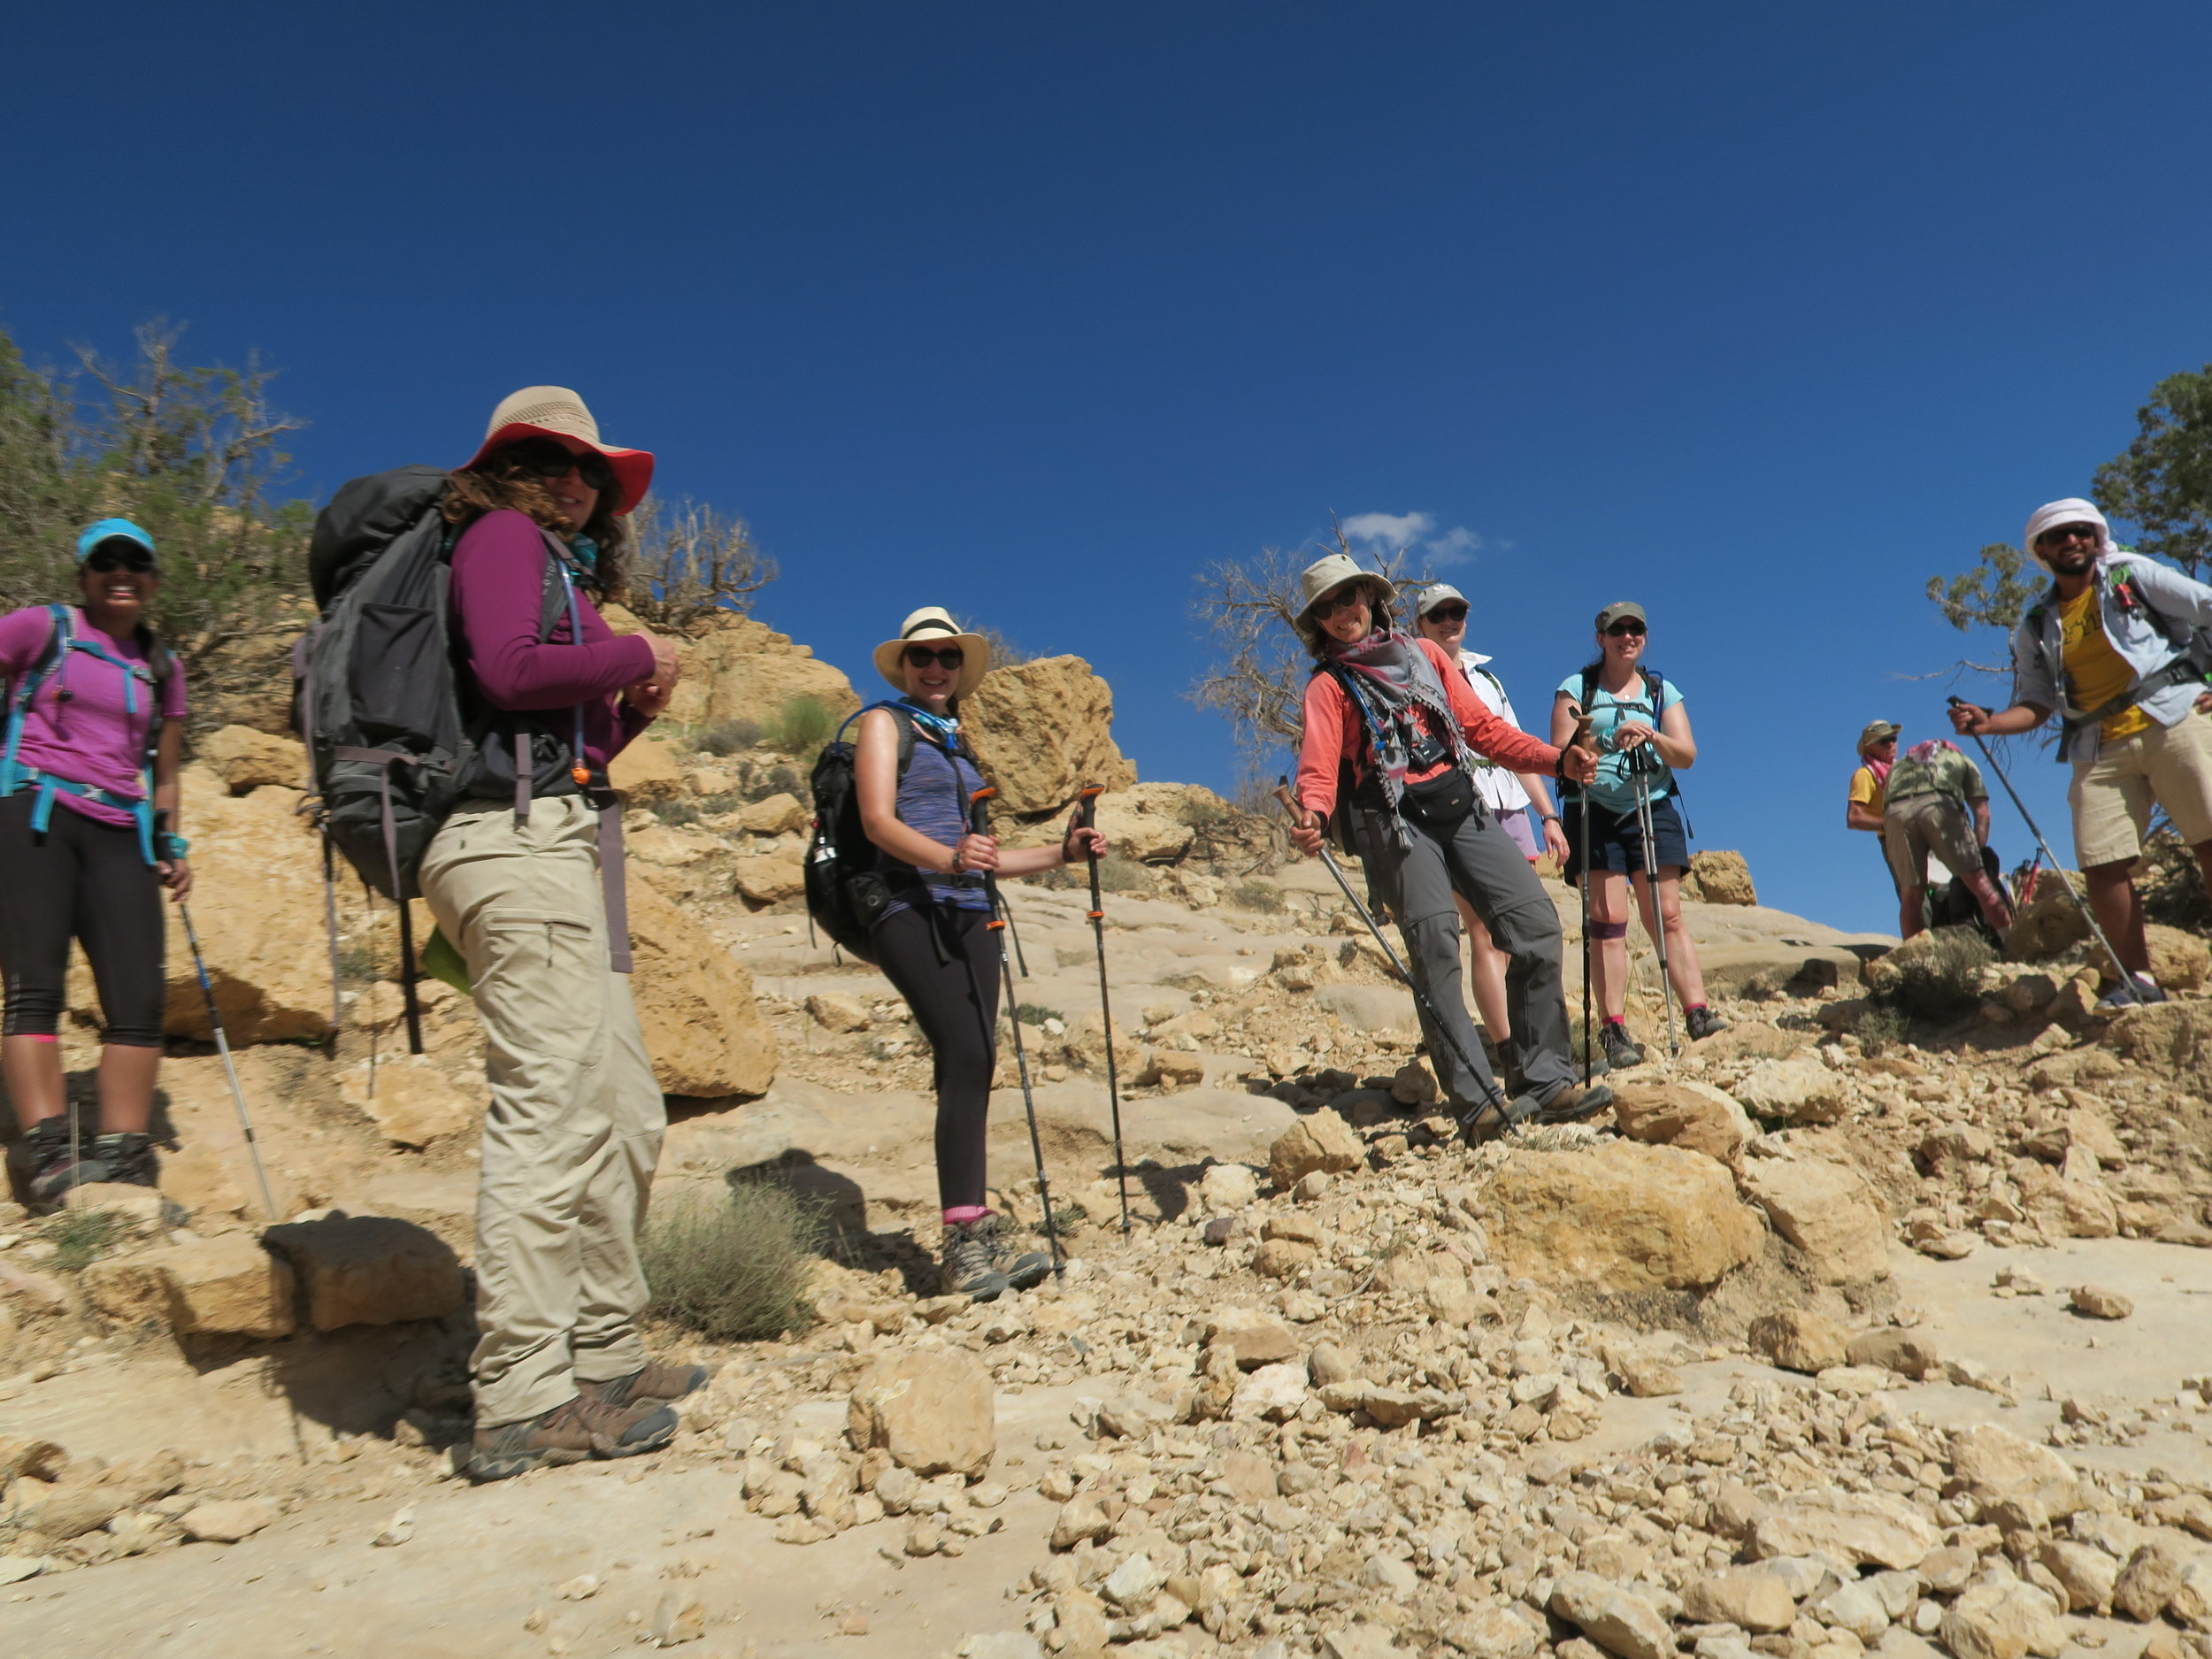 A typical view when you stop for a breather and a giggle with your fellow trekkers